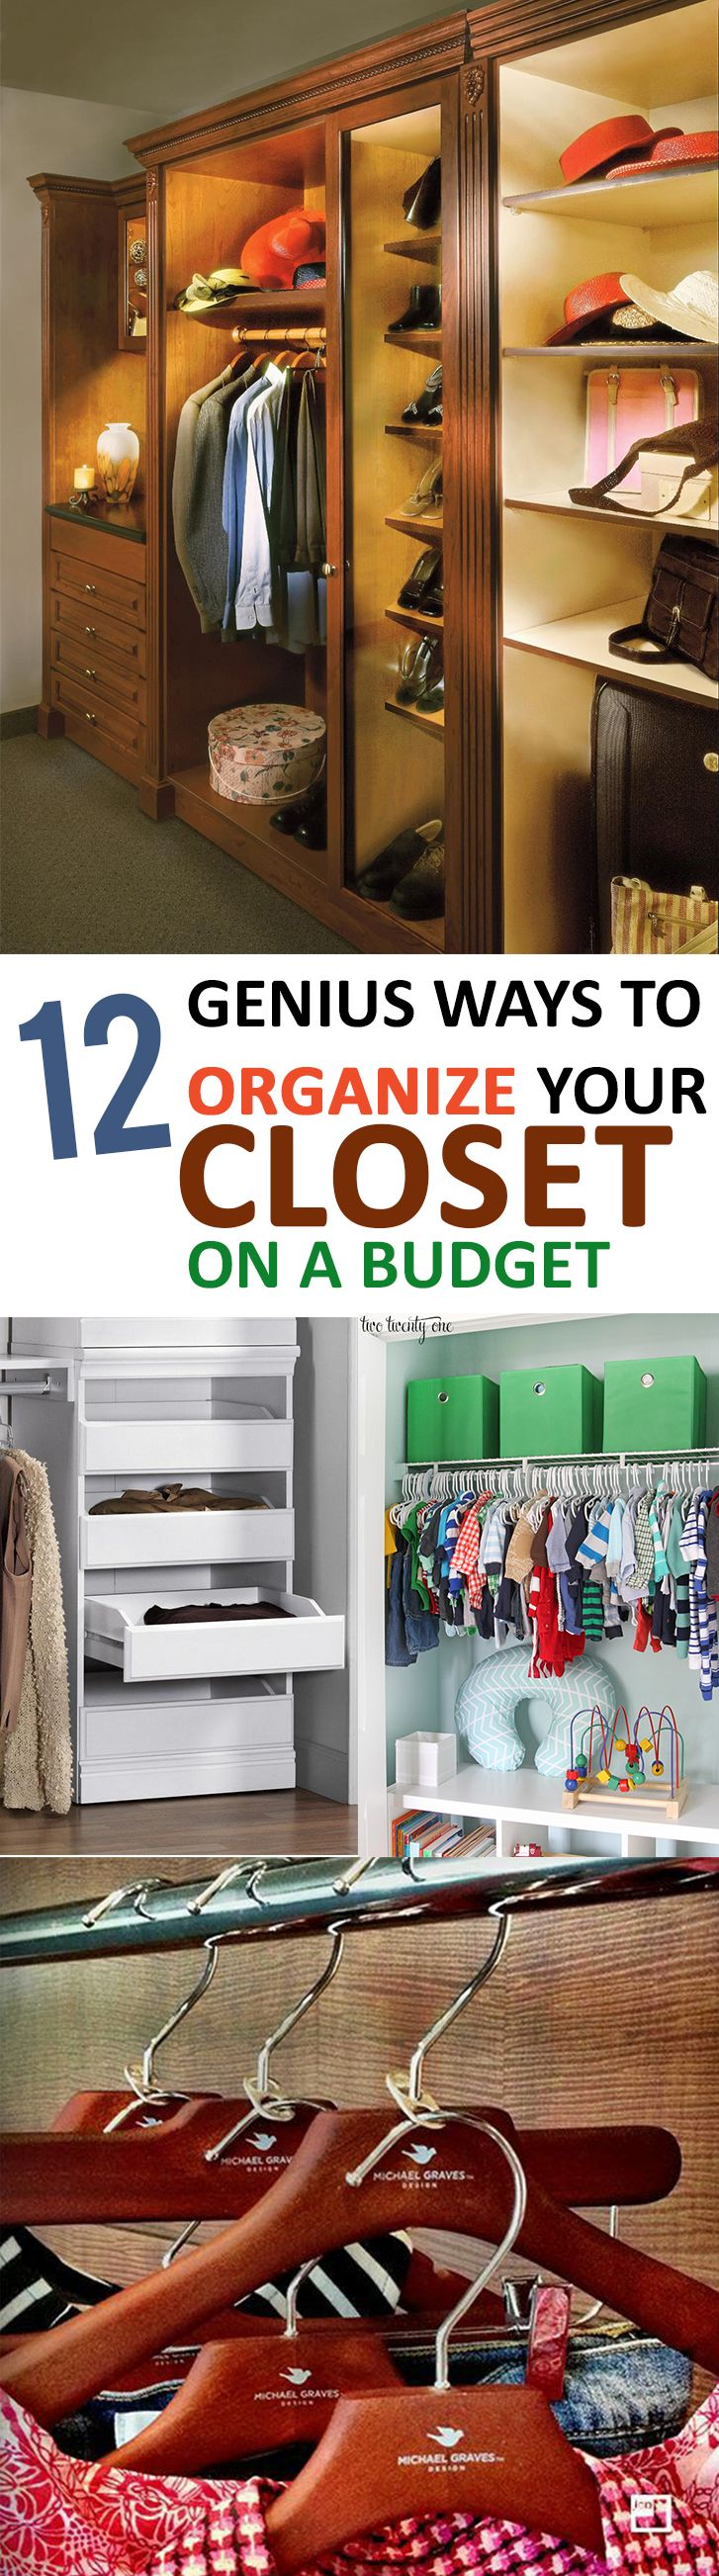 12 Genius Ways to Organize Your Closet on a Budget Small